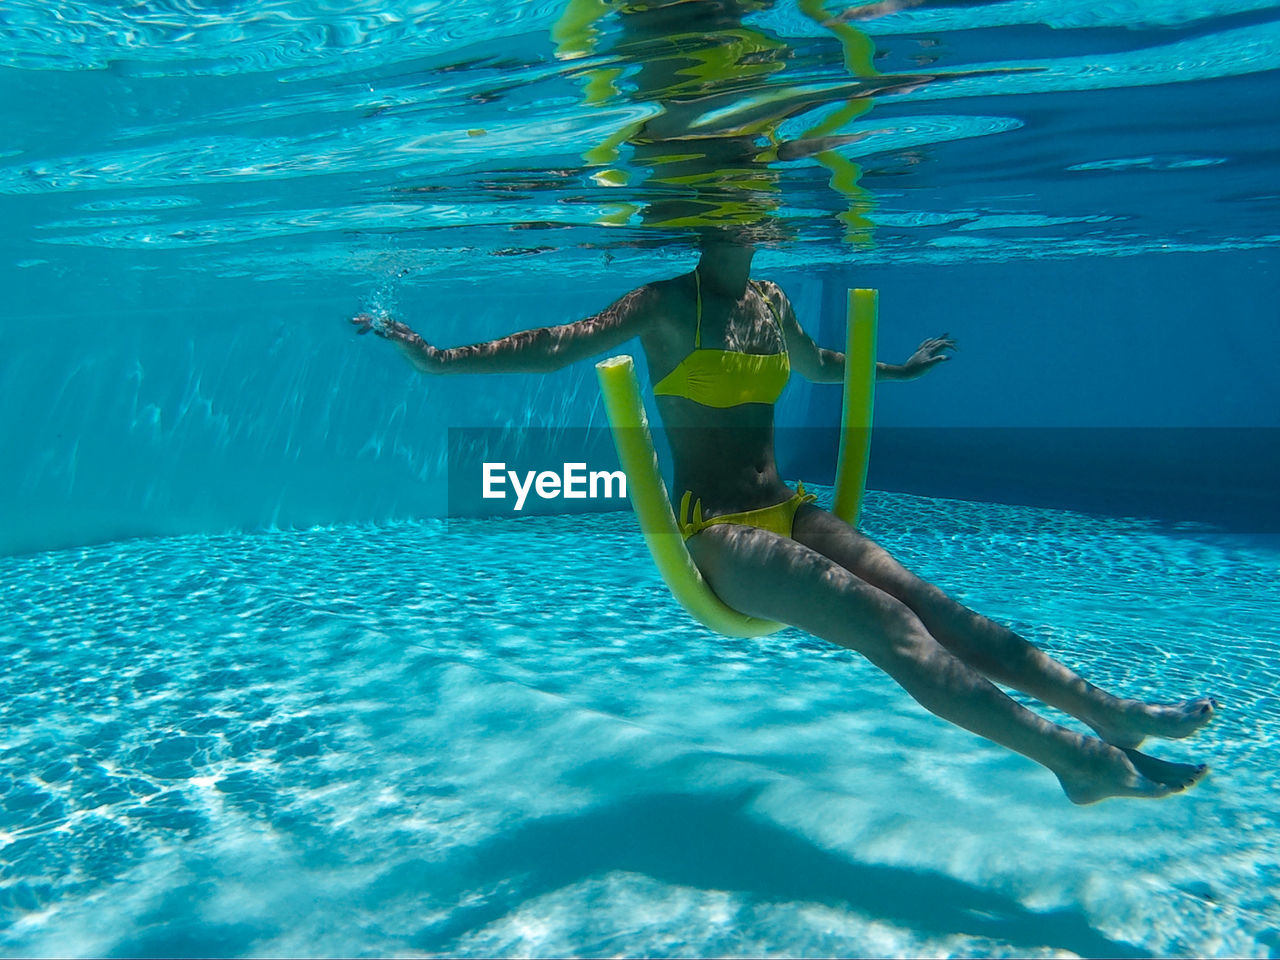 Underwater View Of Woman Sitting On Swimming Noodle